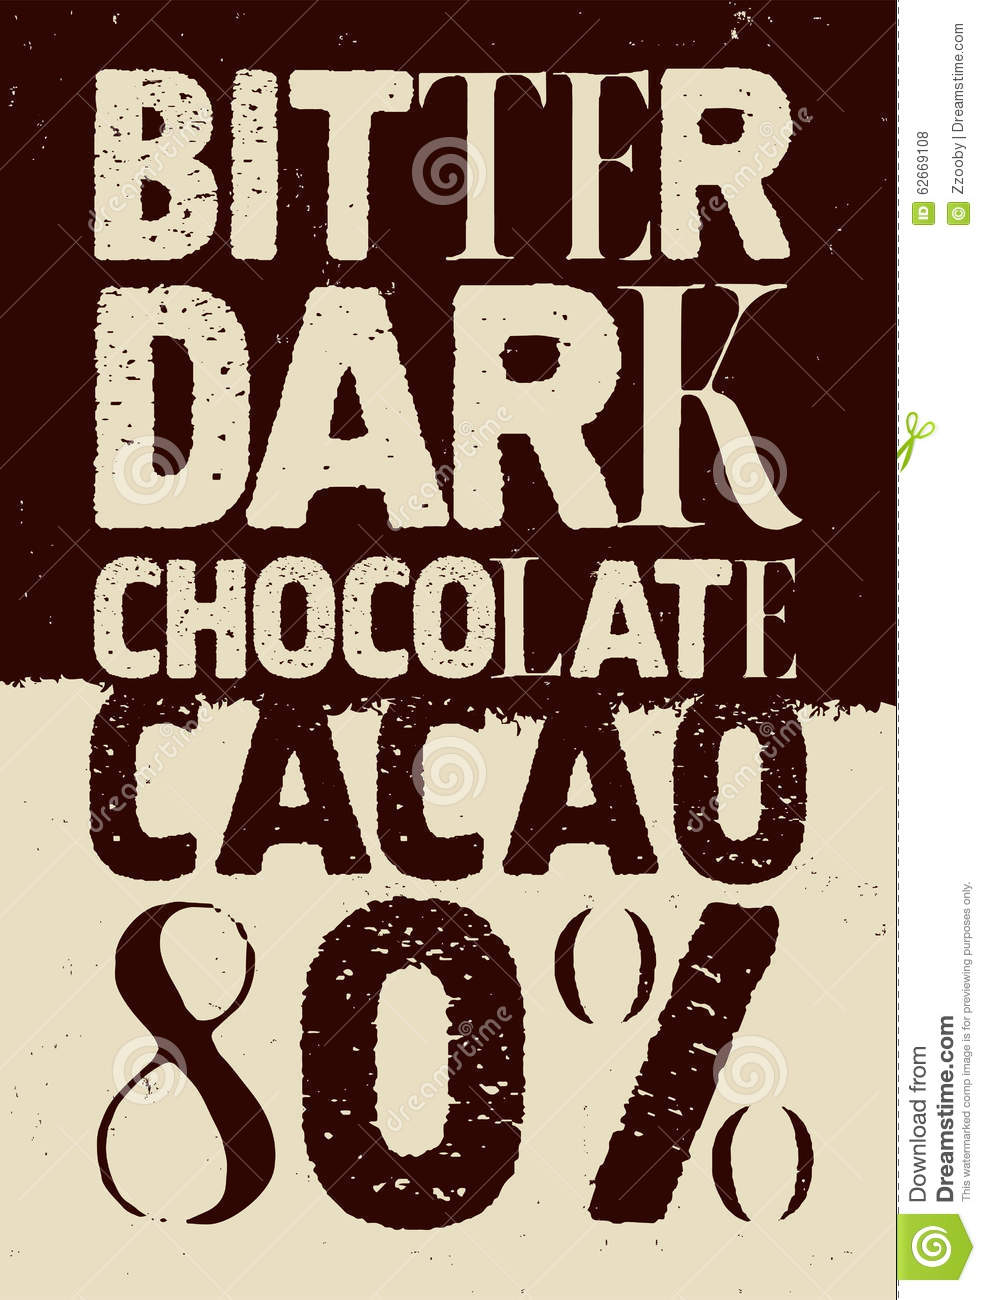 Poster design vector download - Bitter Chocolate Dark Design Illustration Poster